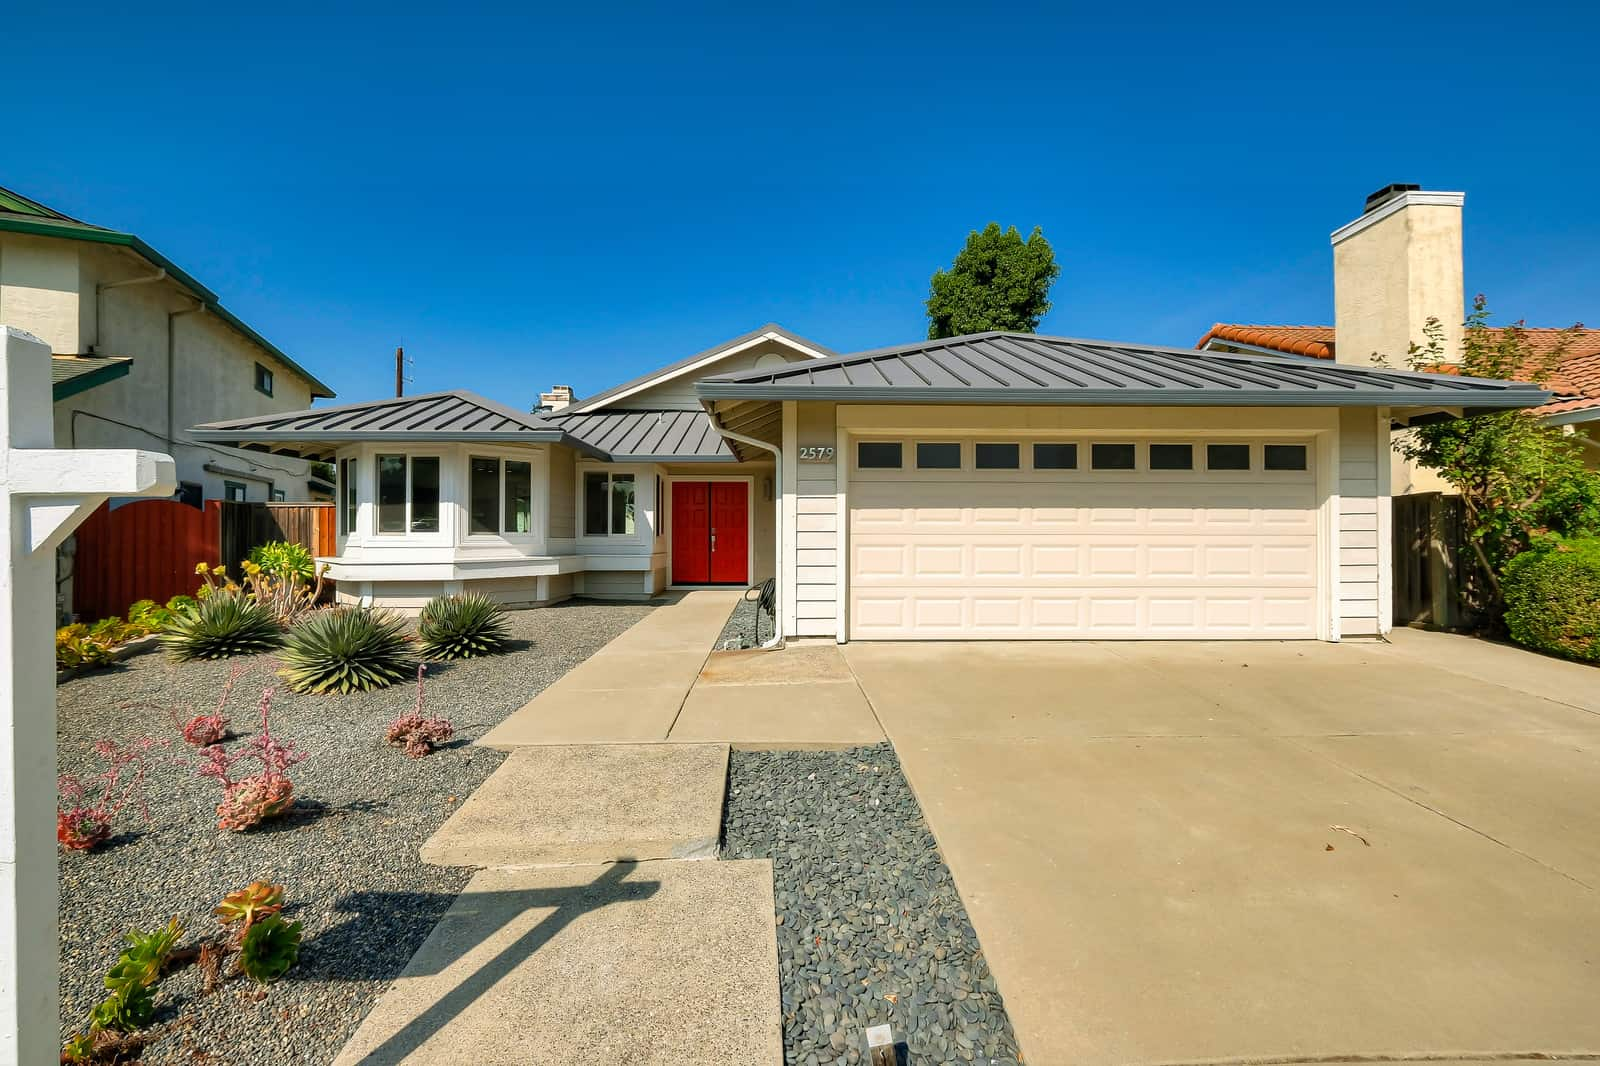 Featured Home: 2579 Bishop Ave, Fremont